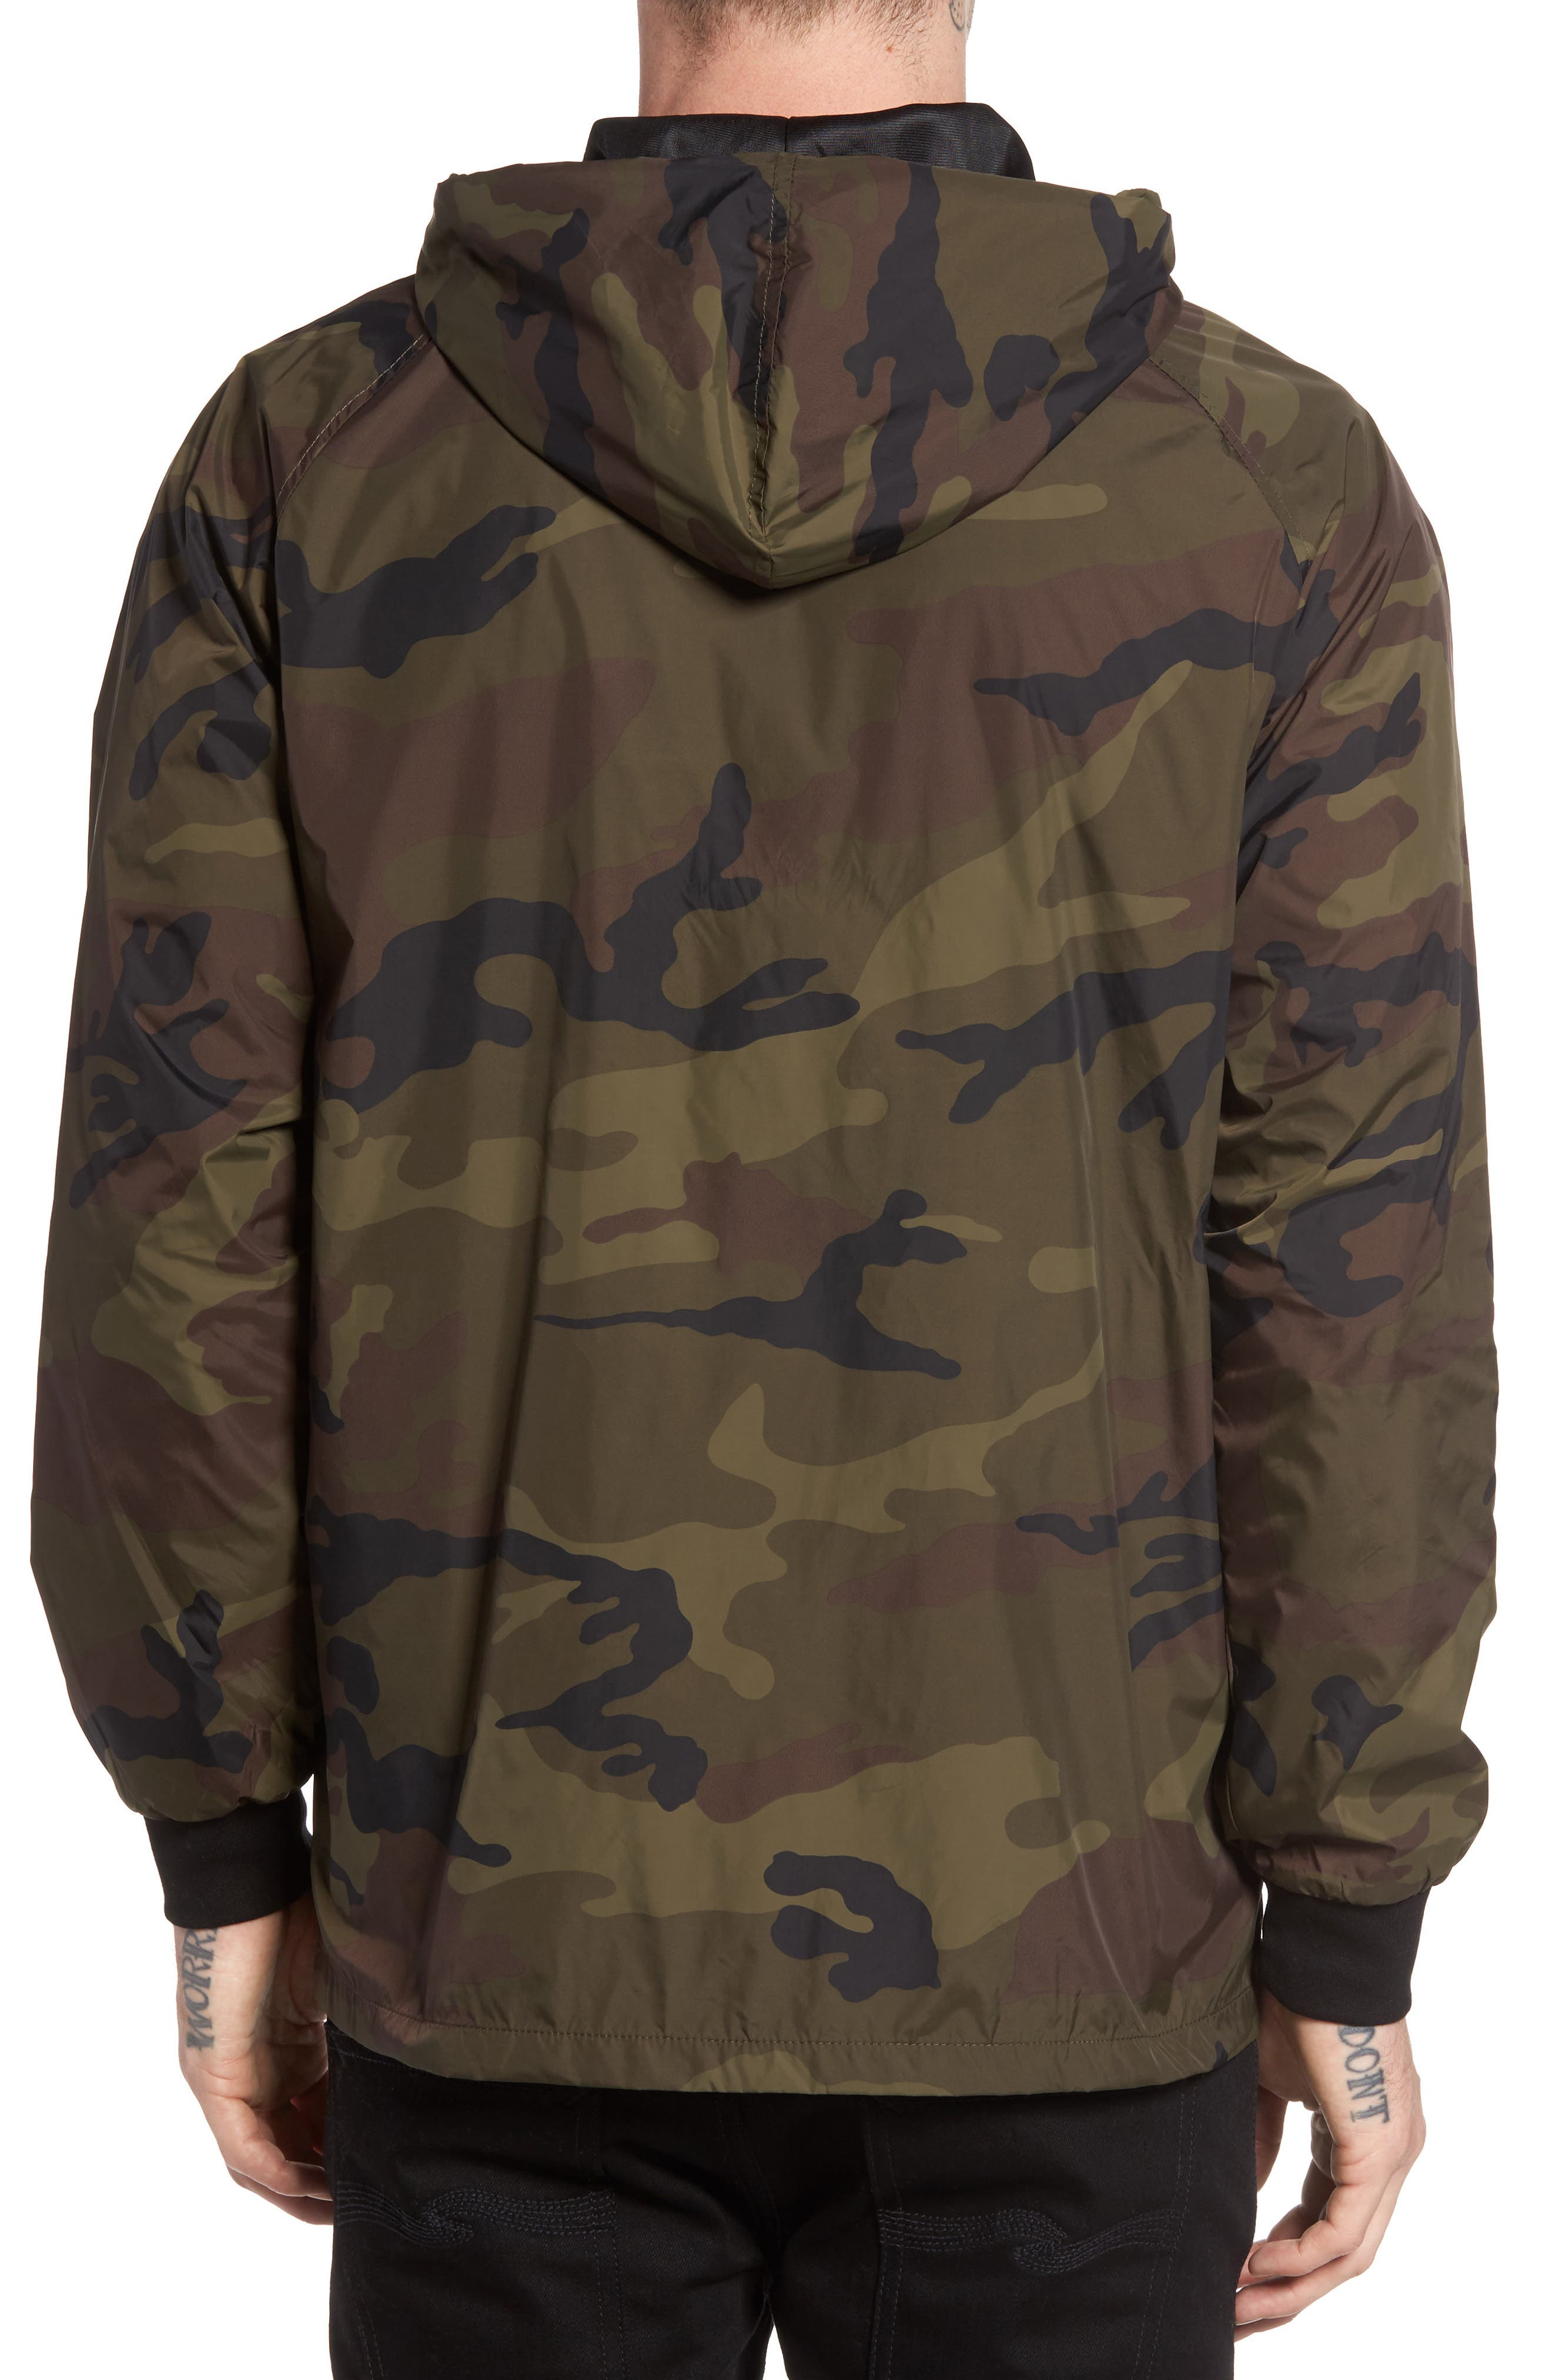 Next Round 2 Hooded Coach Jacket,                             Alternate thumbnail 3, color,                             305